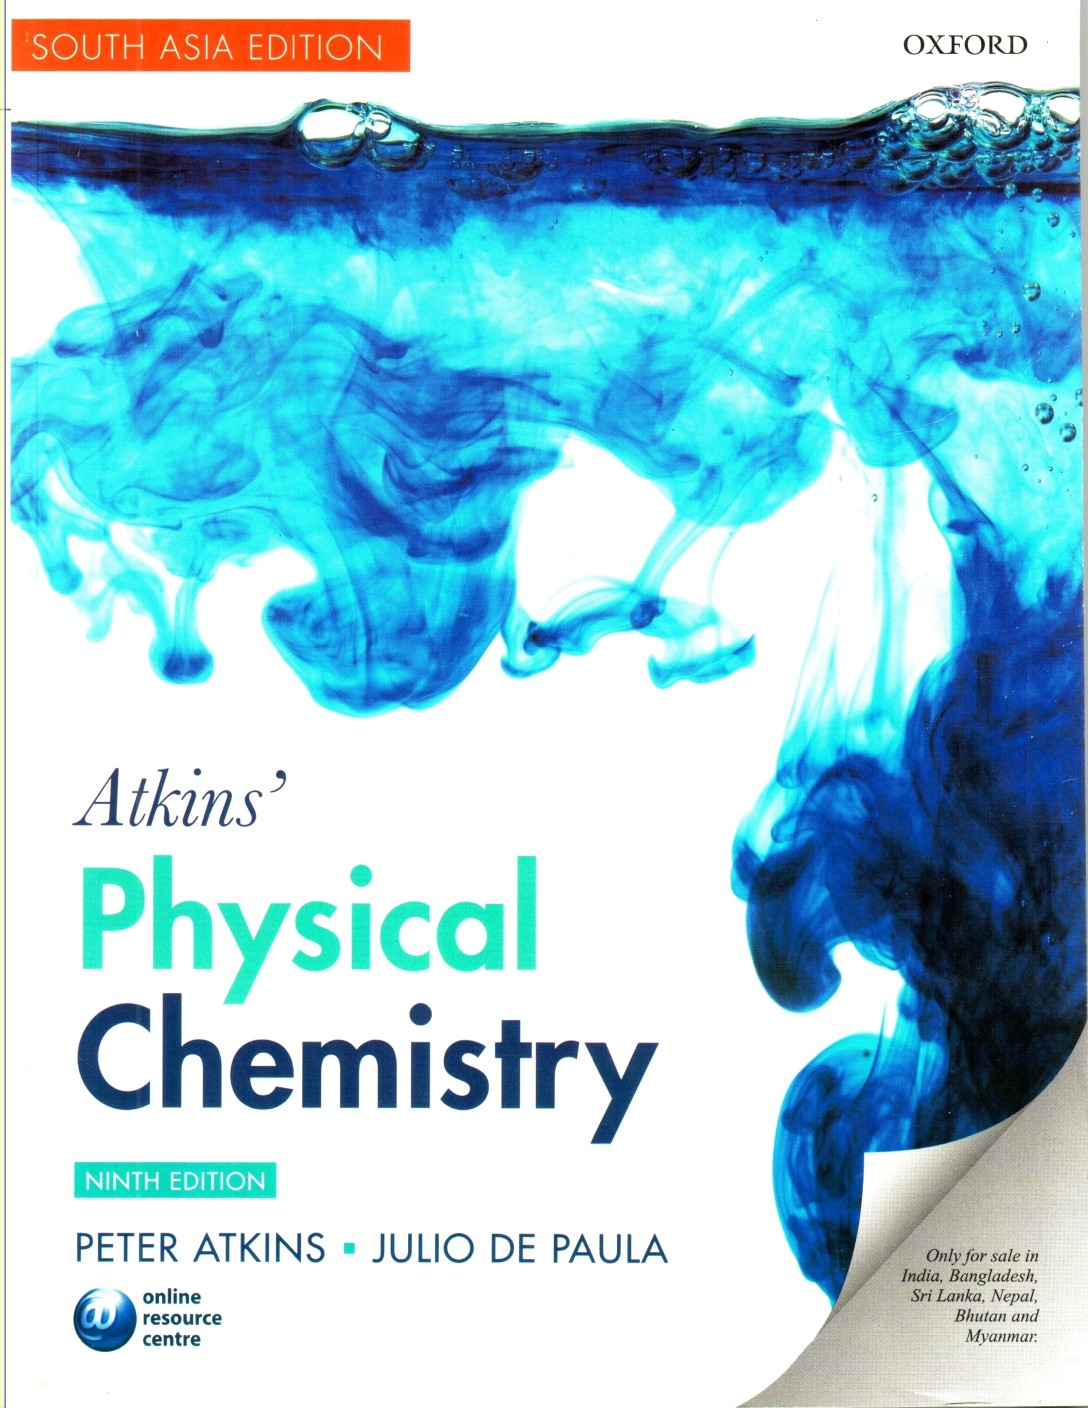 Physical chemistry atkins pdf dolapgnetband physical chemistry atkins pdf atkins apos physical chemistry 9th edition fandeluxe Image collections